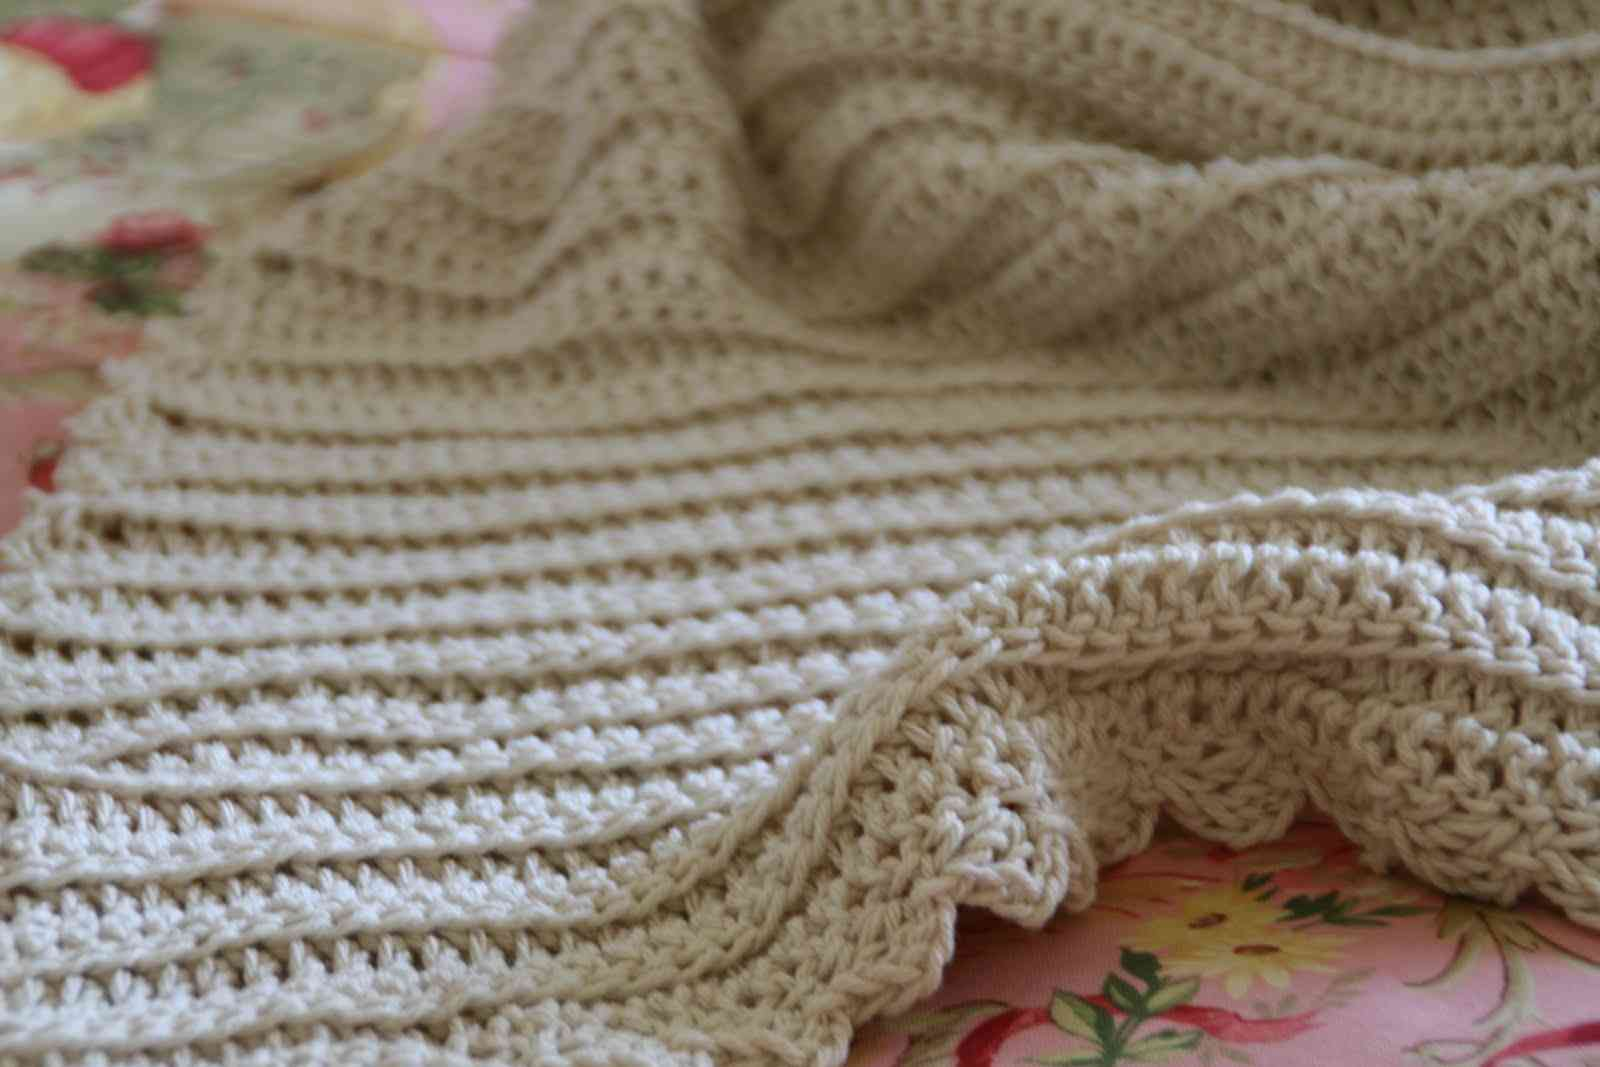 Crochet Blanket Patterns Free Baby : 15 Most Popular Free Crochet Baby Blanket Patterns